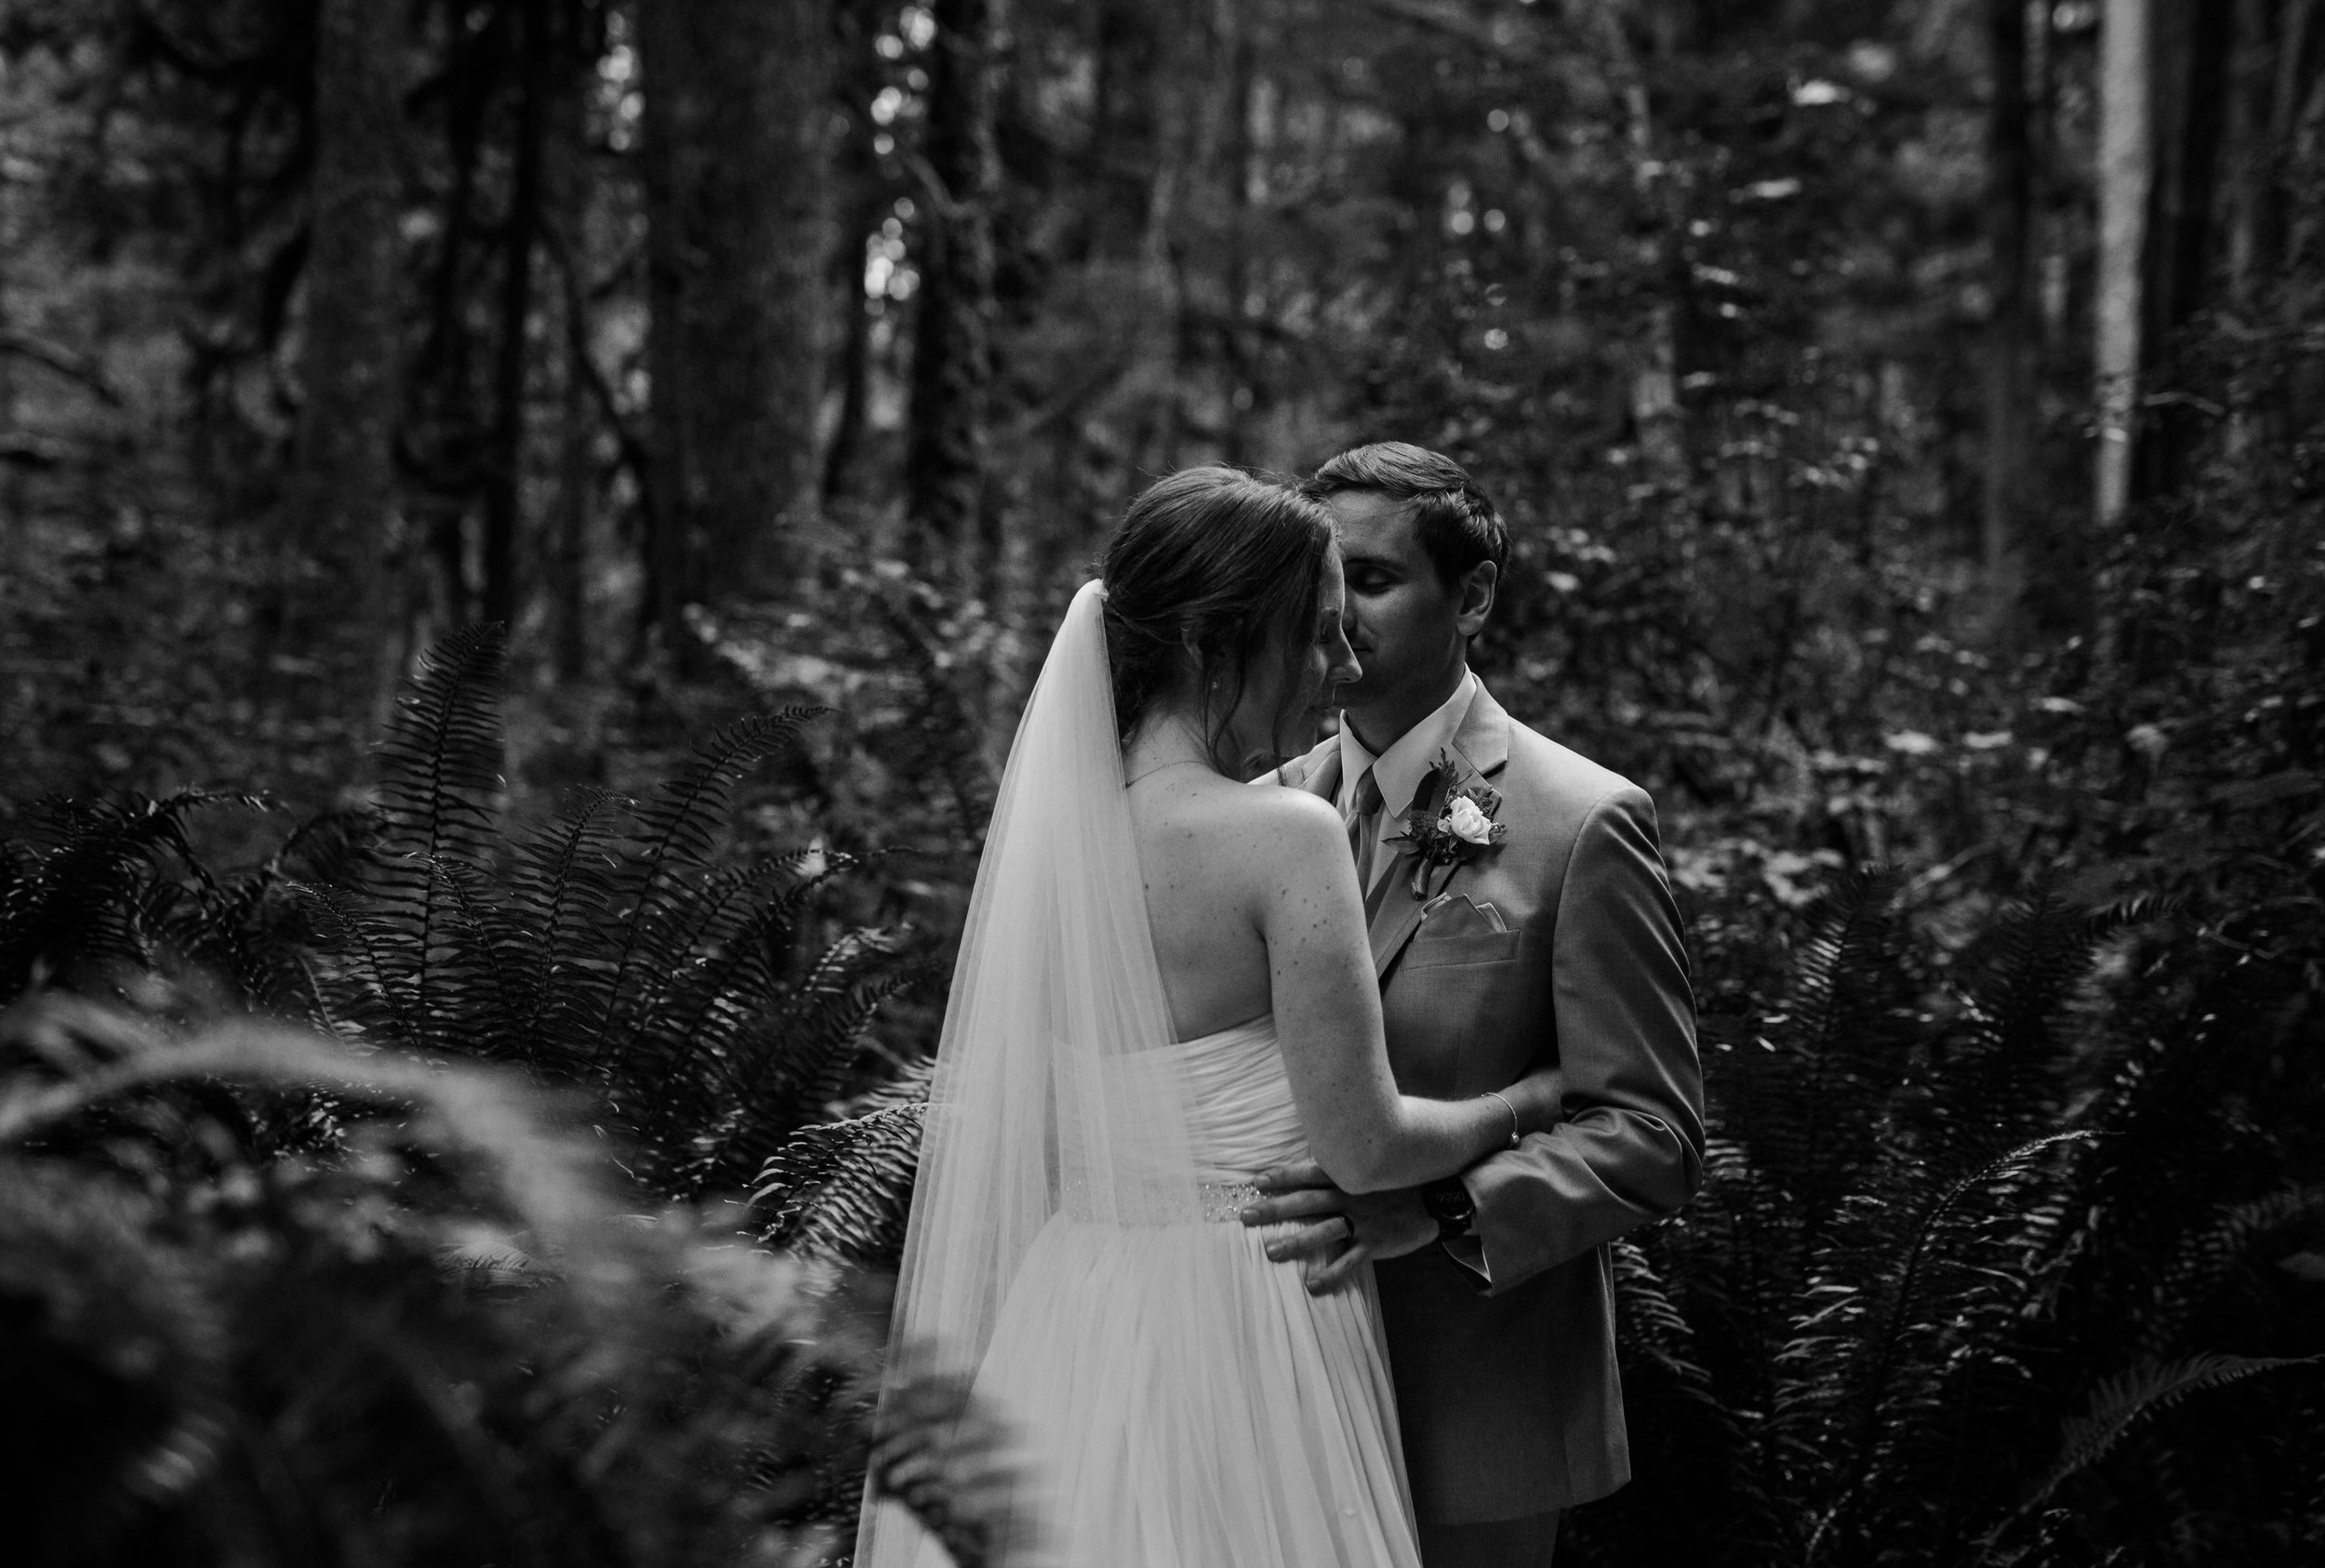 West Coast Wilderness Lodge Wedding Photos - Vancouver Wedding Photographer & Videographer - Sunshine Coast Wedding Photos - Sunshine Coast Wedding Photographer - Jennifer Picard Photography - IMG_7243.jpg